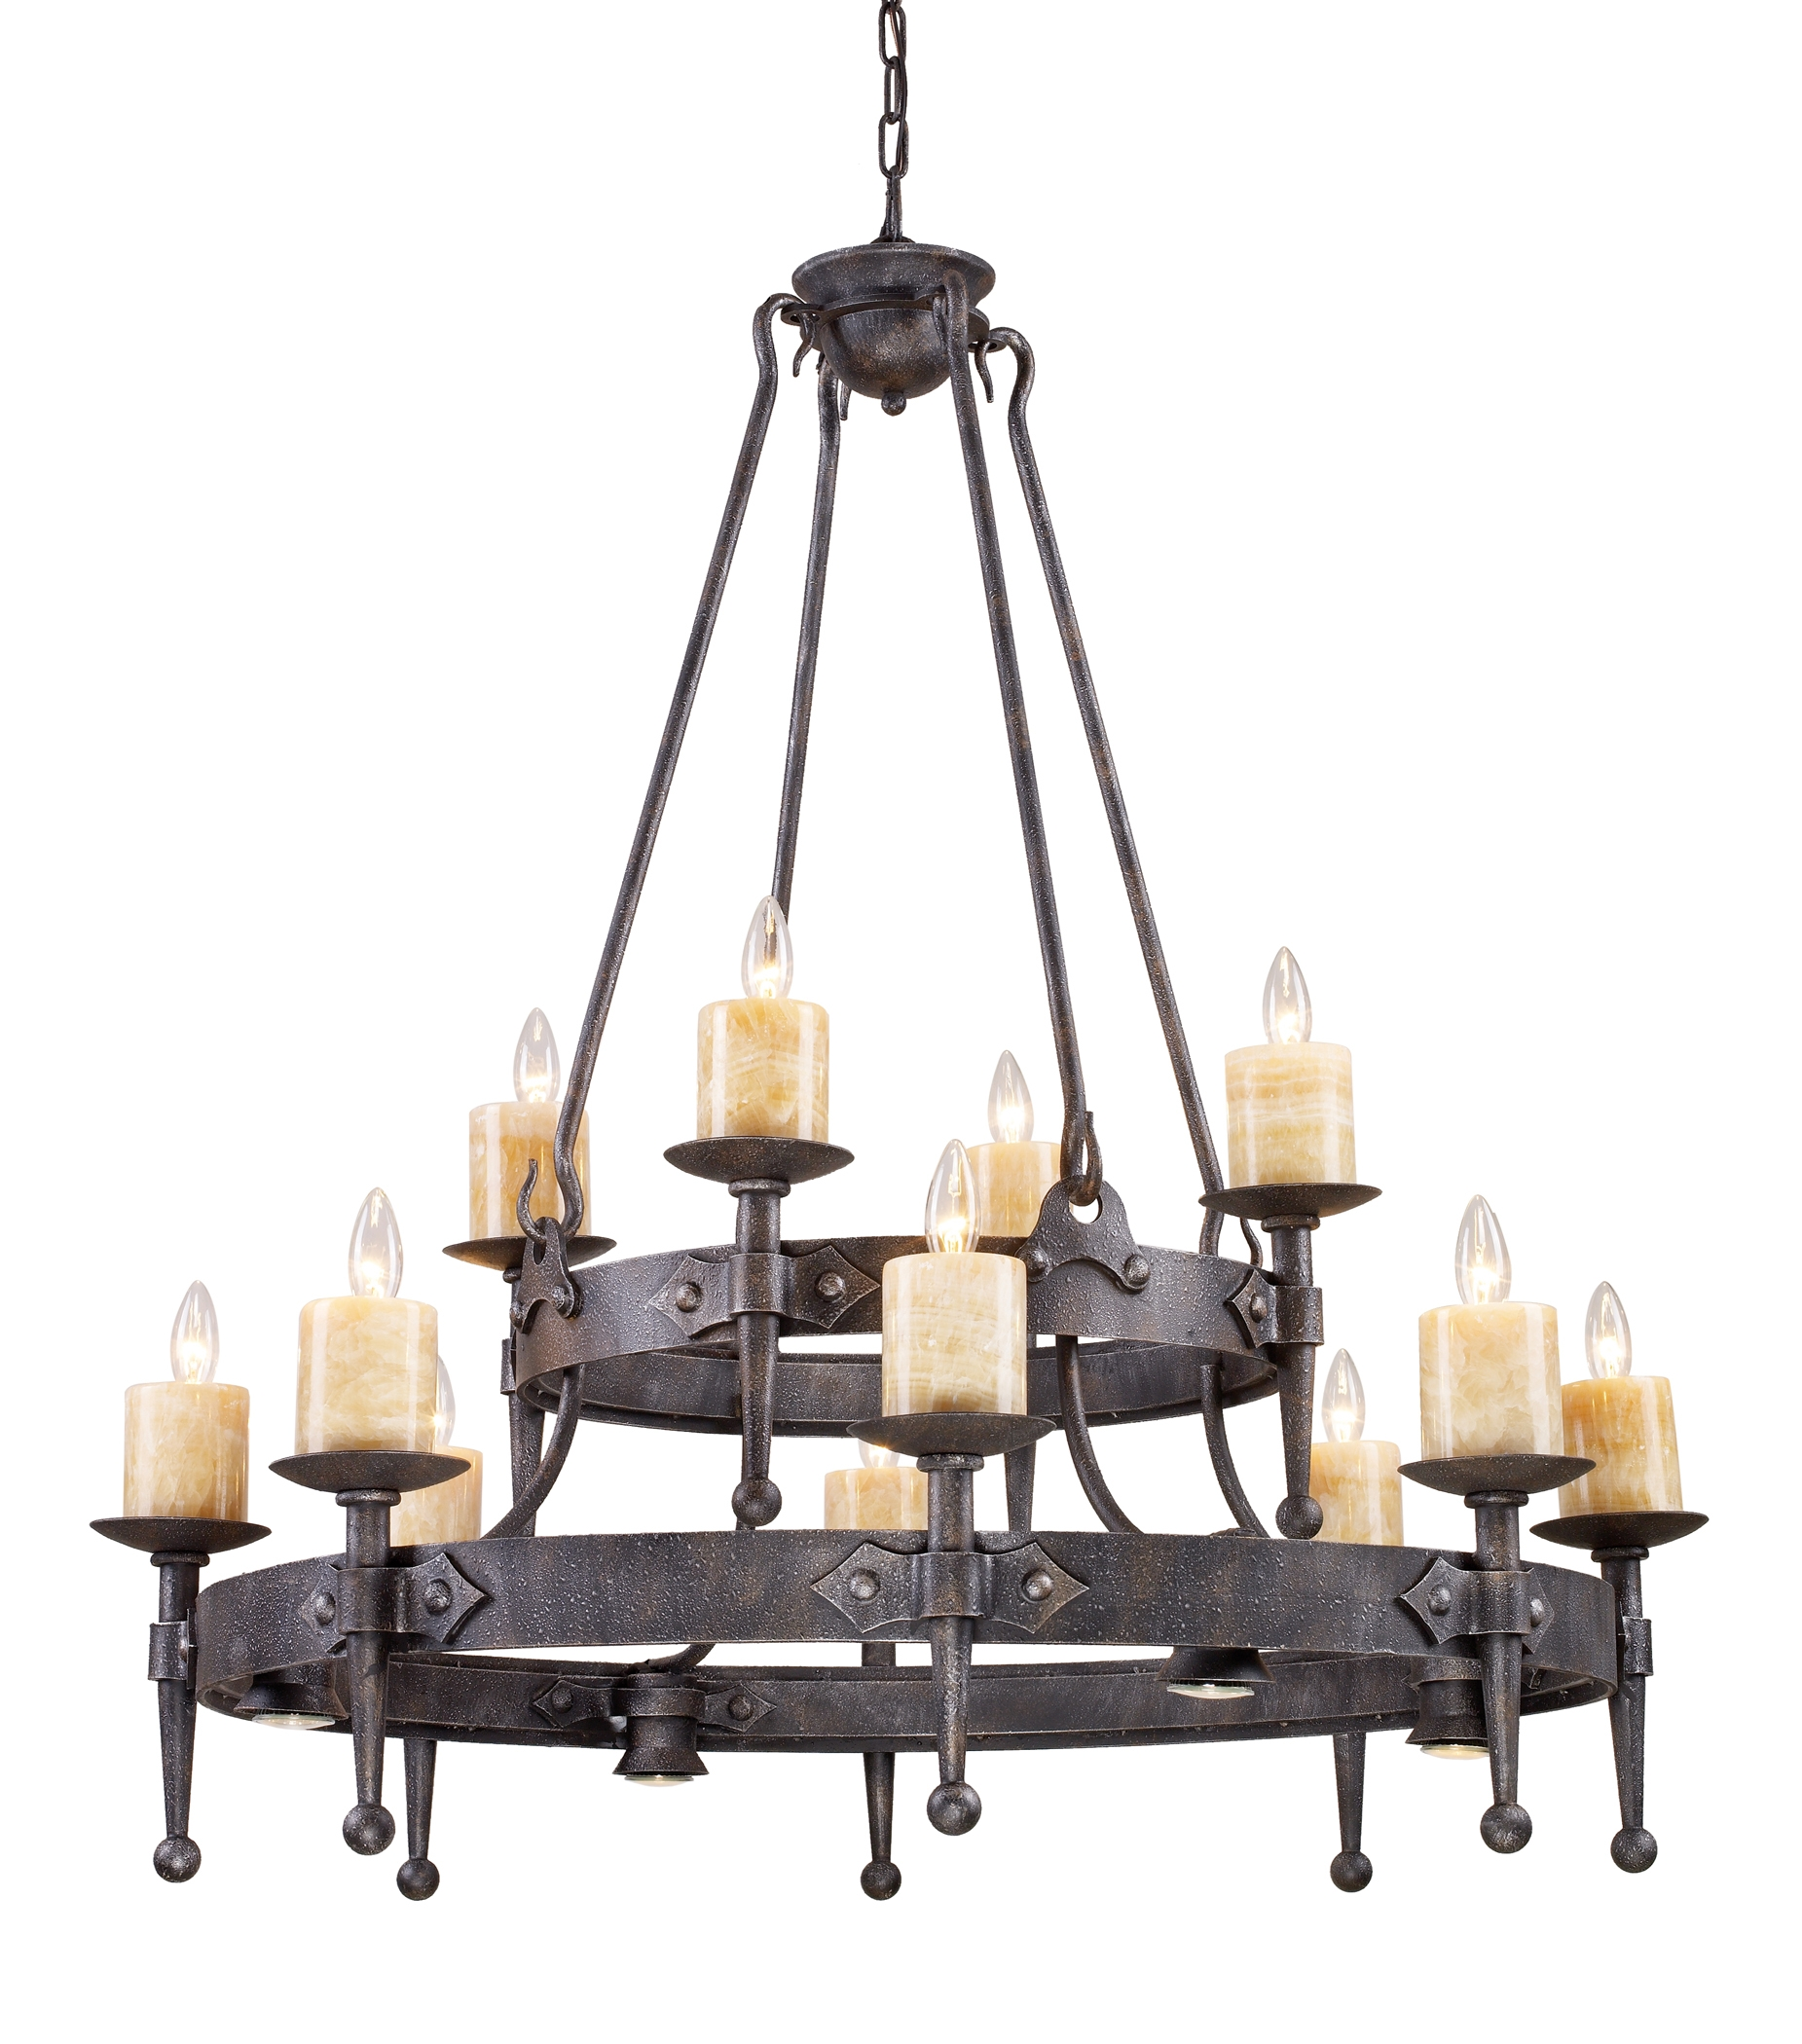 Real Candle Chandelier The Best Candle Design Regarding Candle Chandelier (Image 15 of 15)